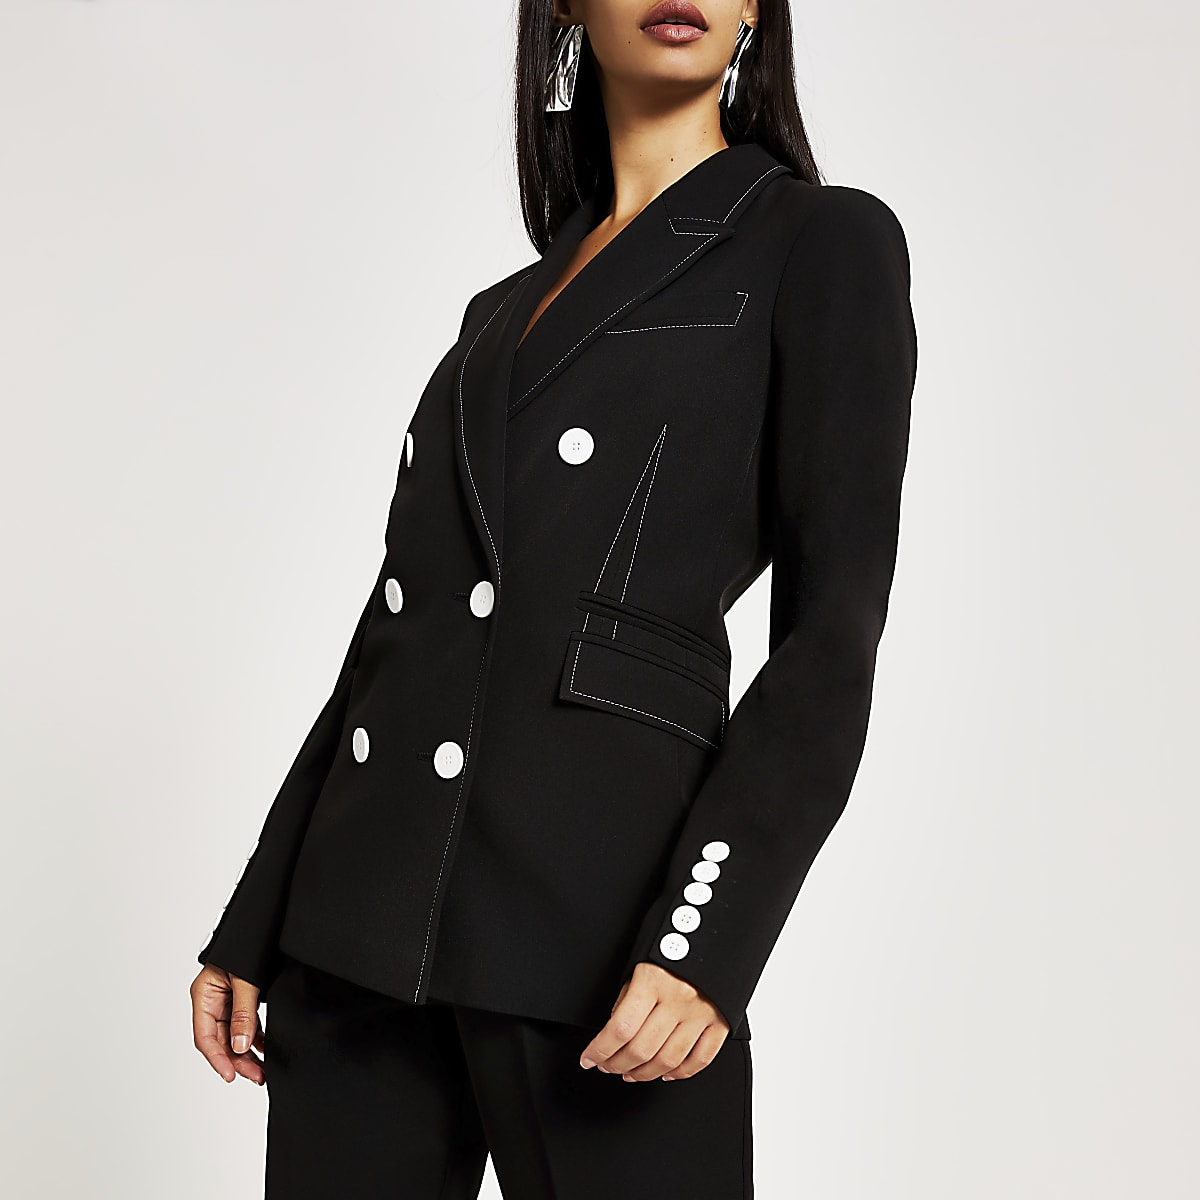 Black contrast stitch double breasted blazer